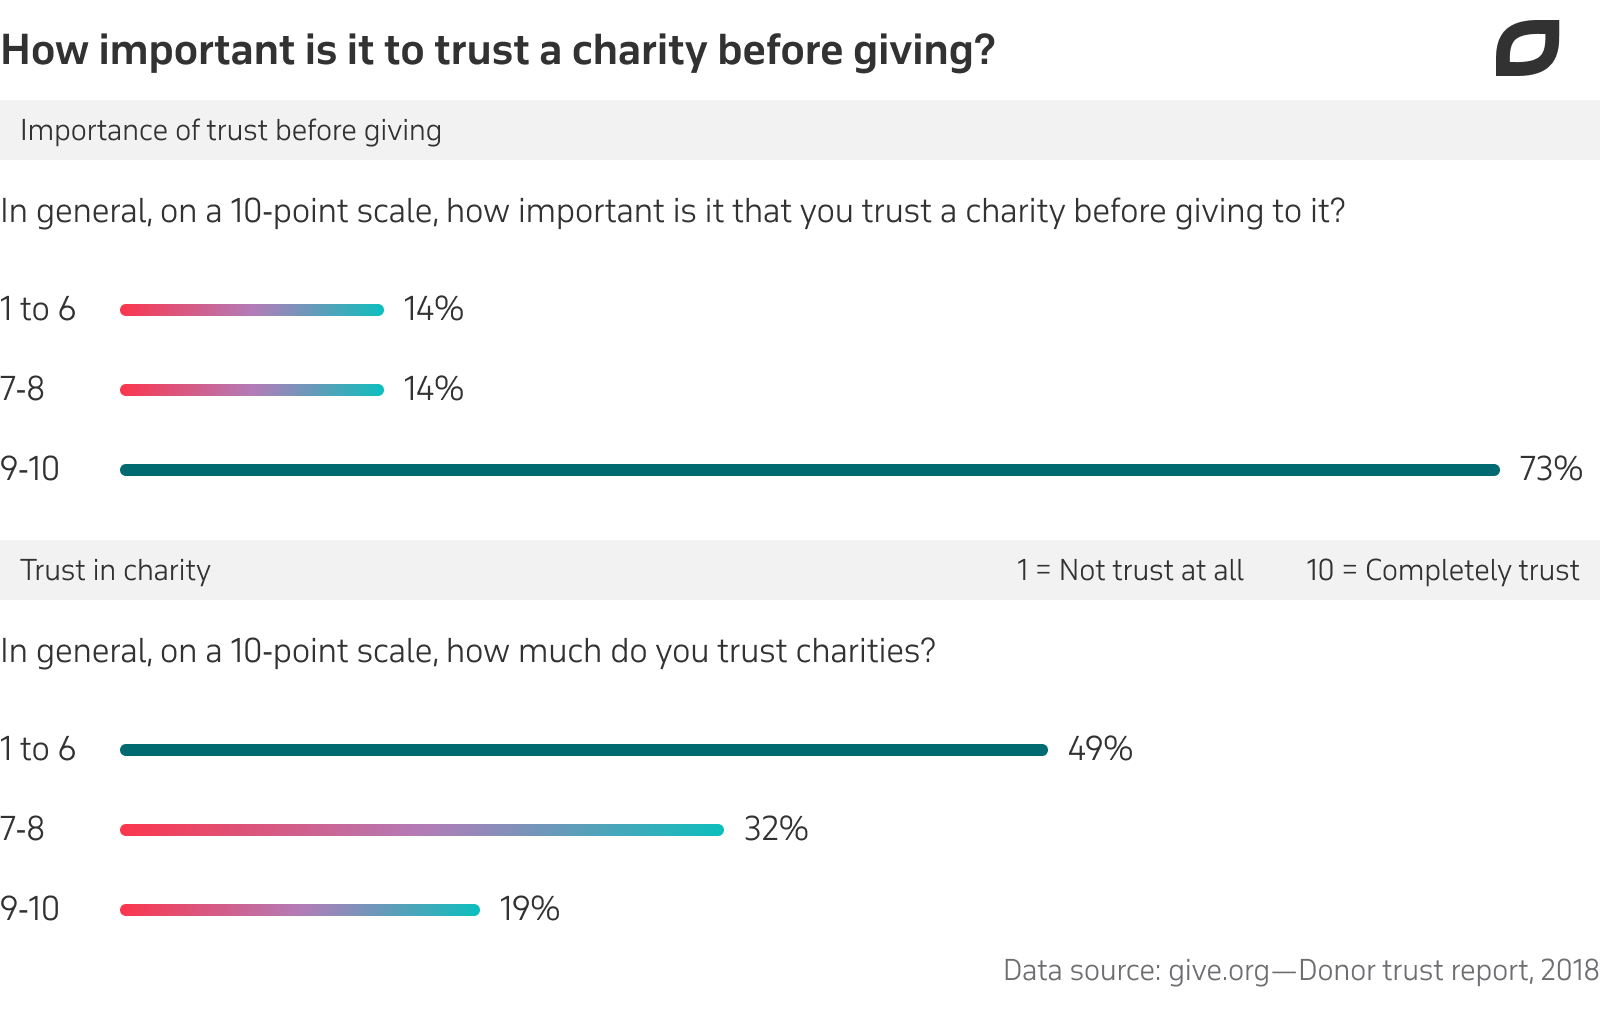 1_How important is it to trust a charity before giving_